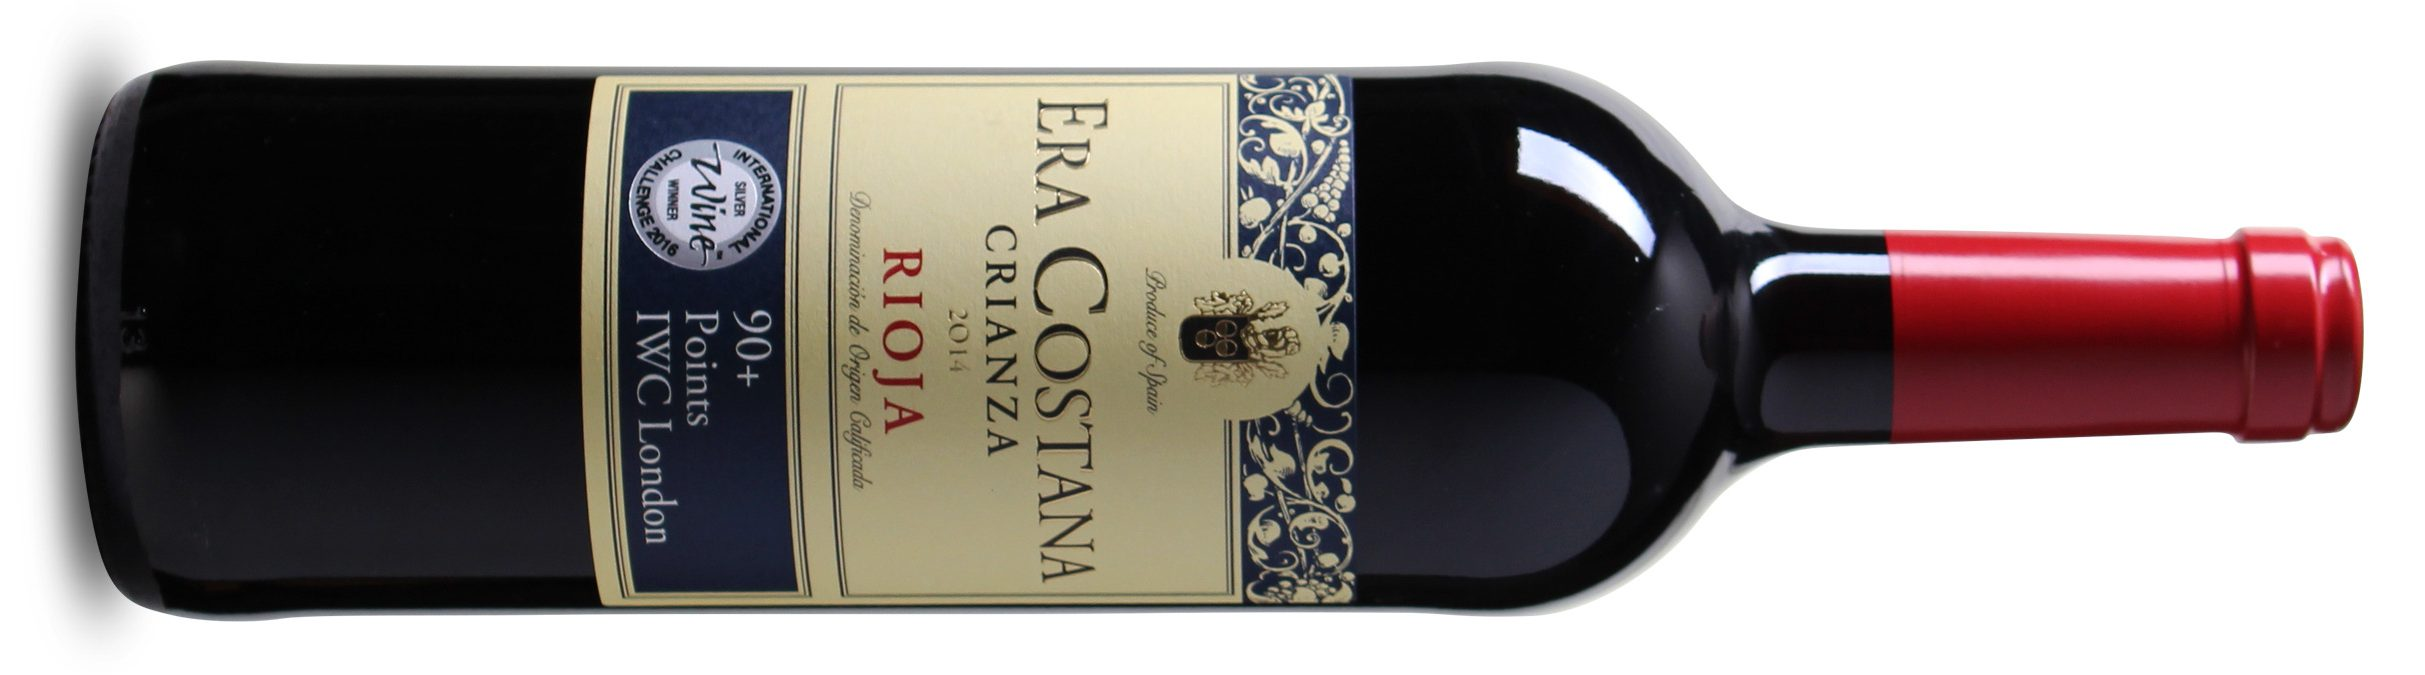 Era Costana Crianza 2014